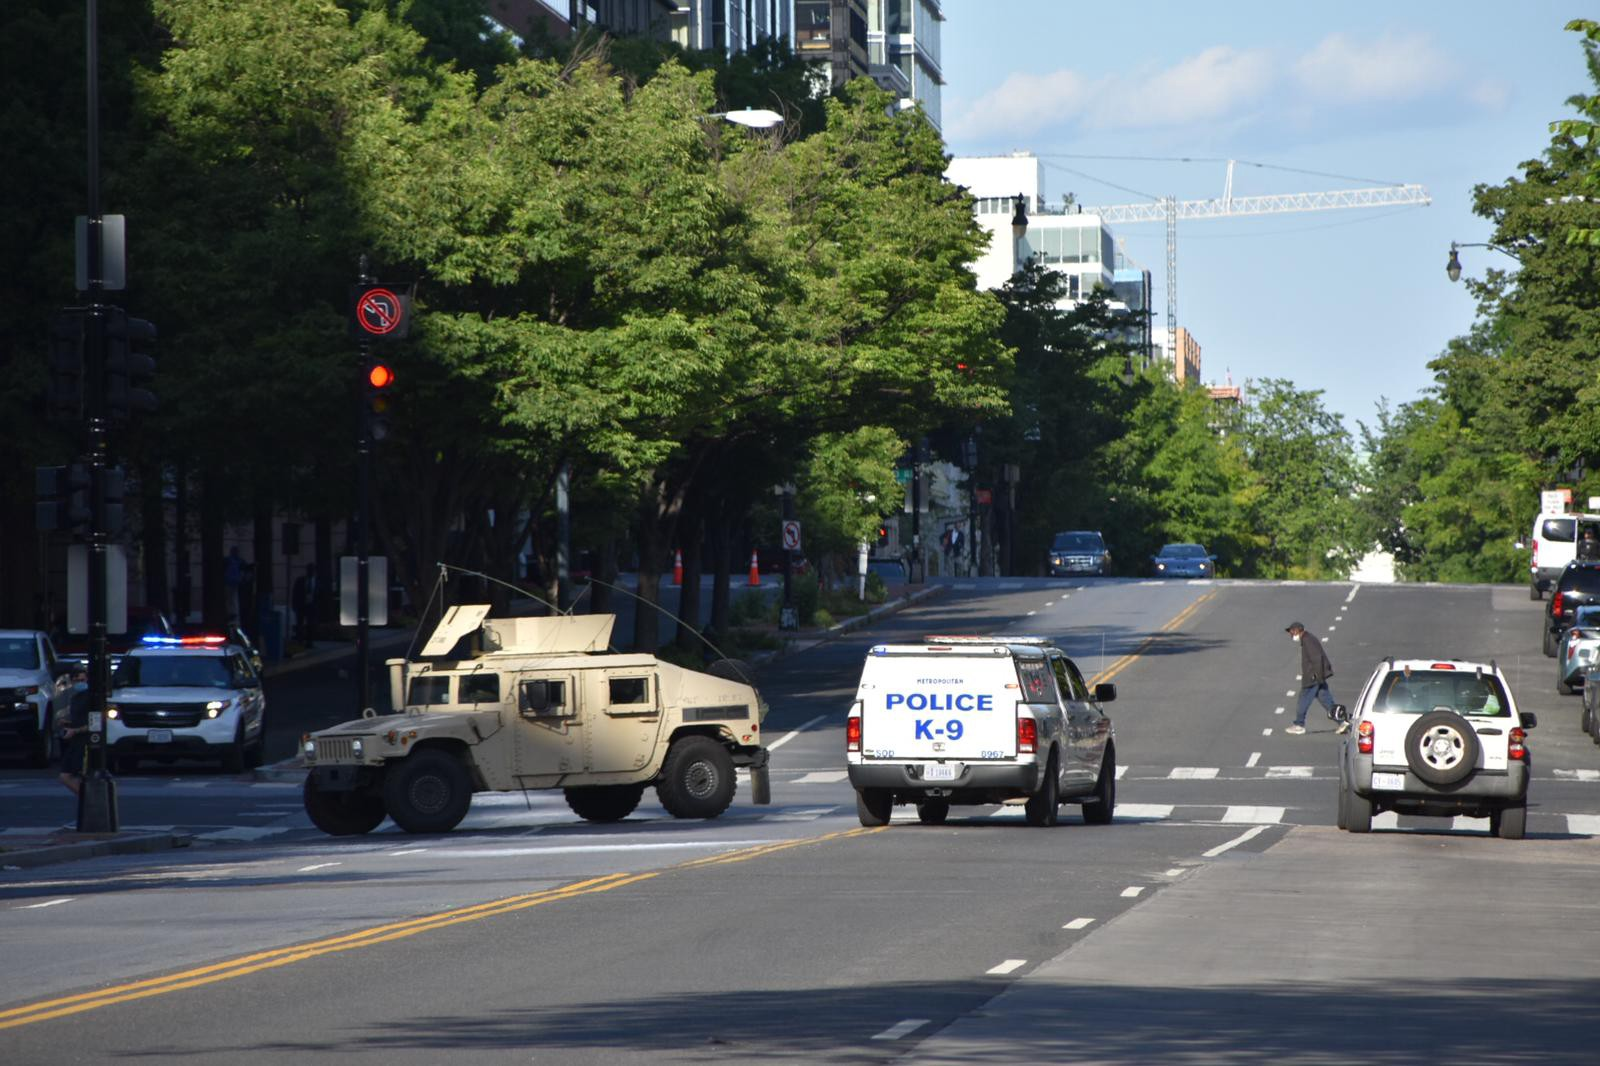 Tan military humvee with police vehicles on the streets of Washington, D.C.